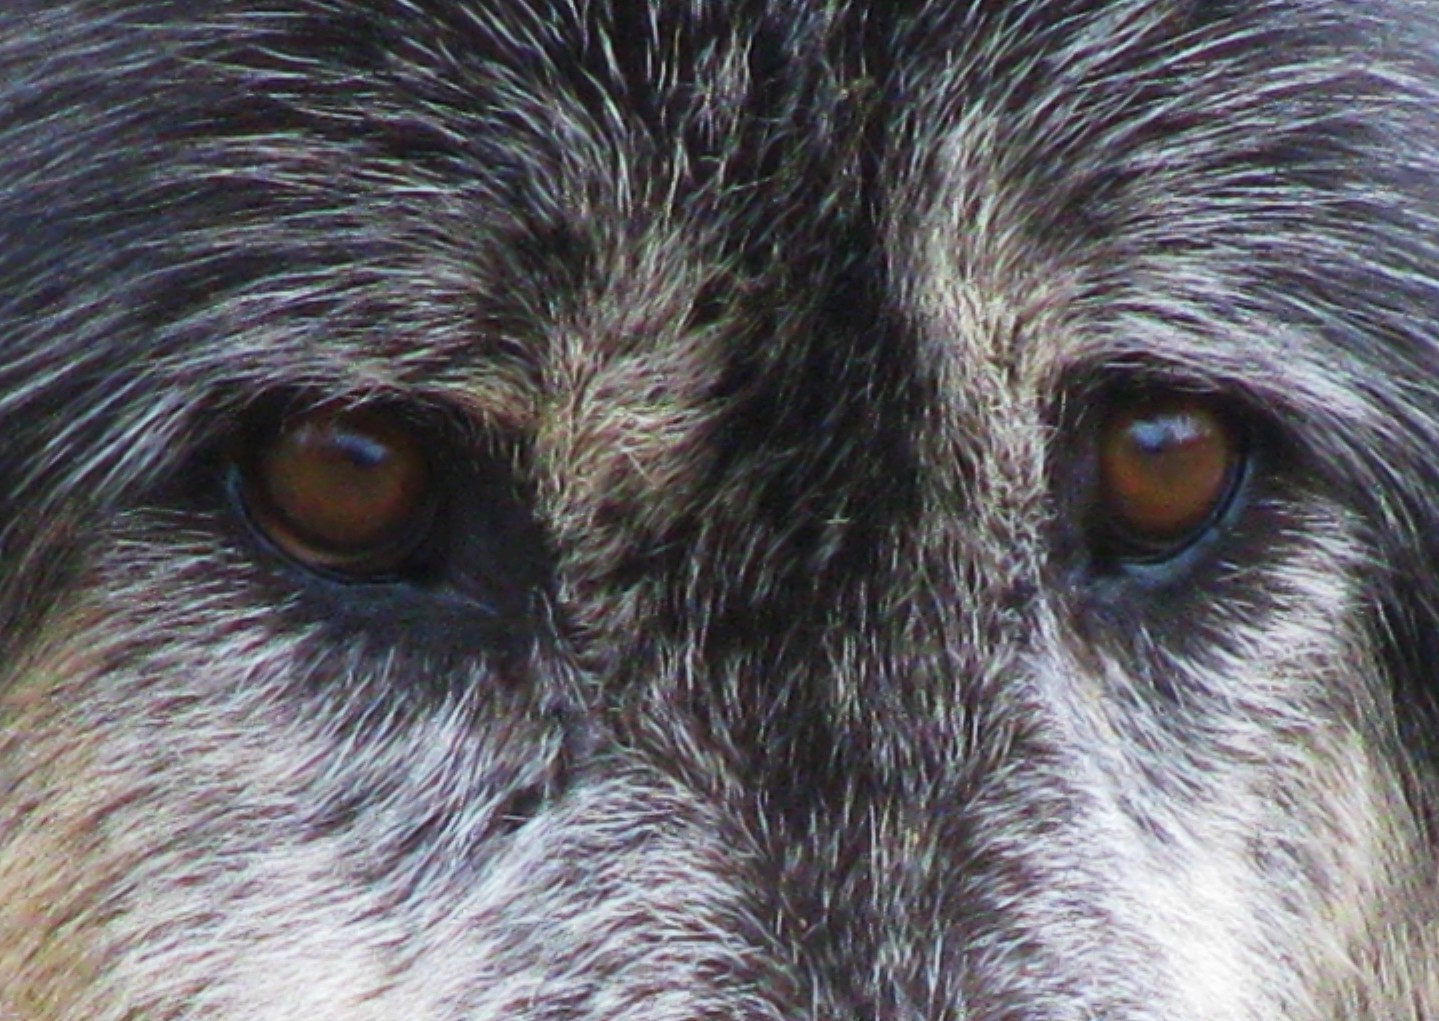 Looking into the eyes of a Gray Wolf.